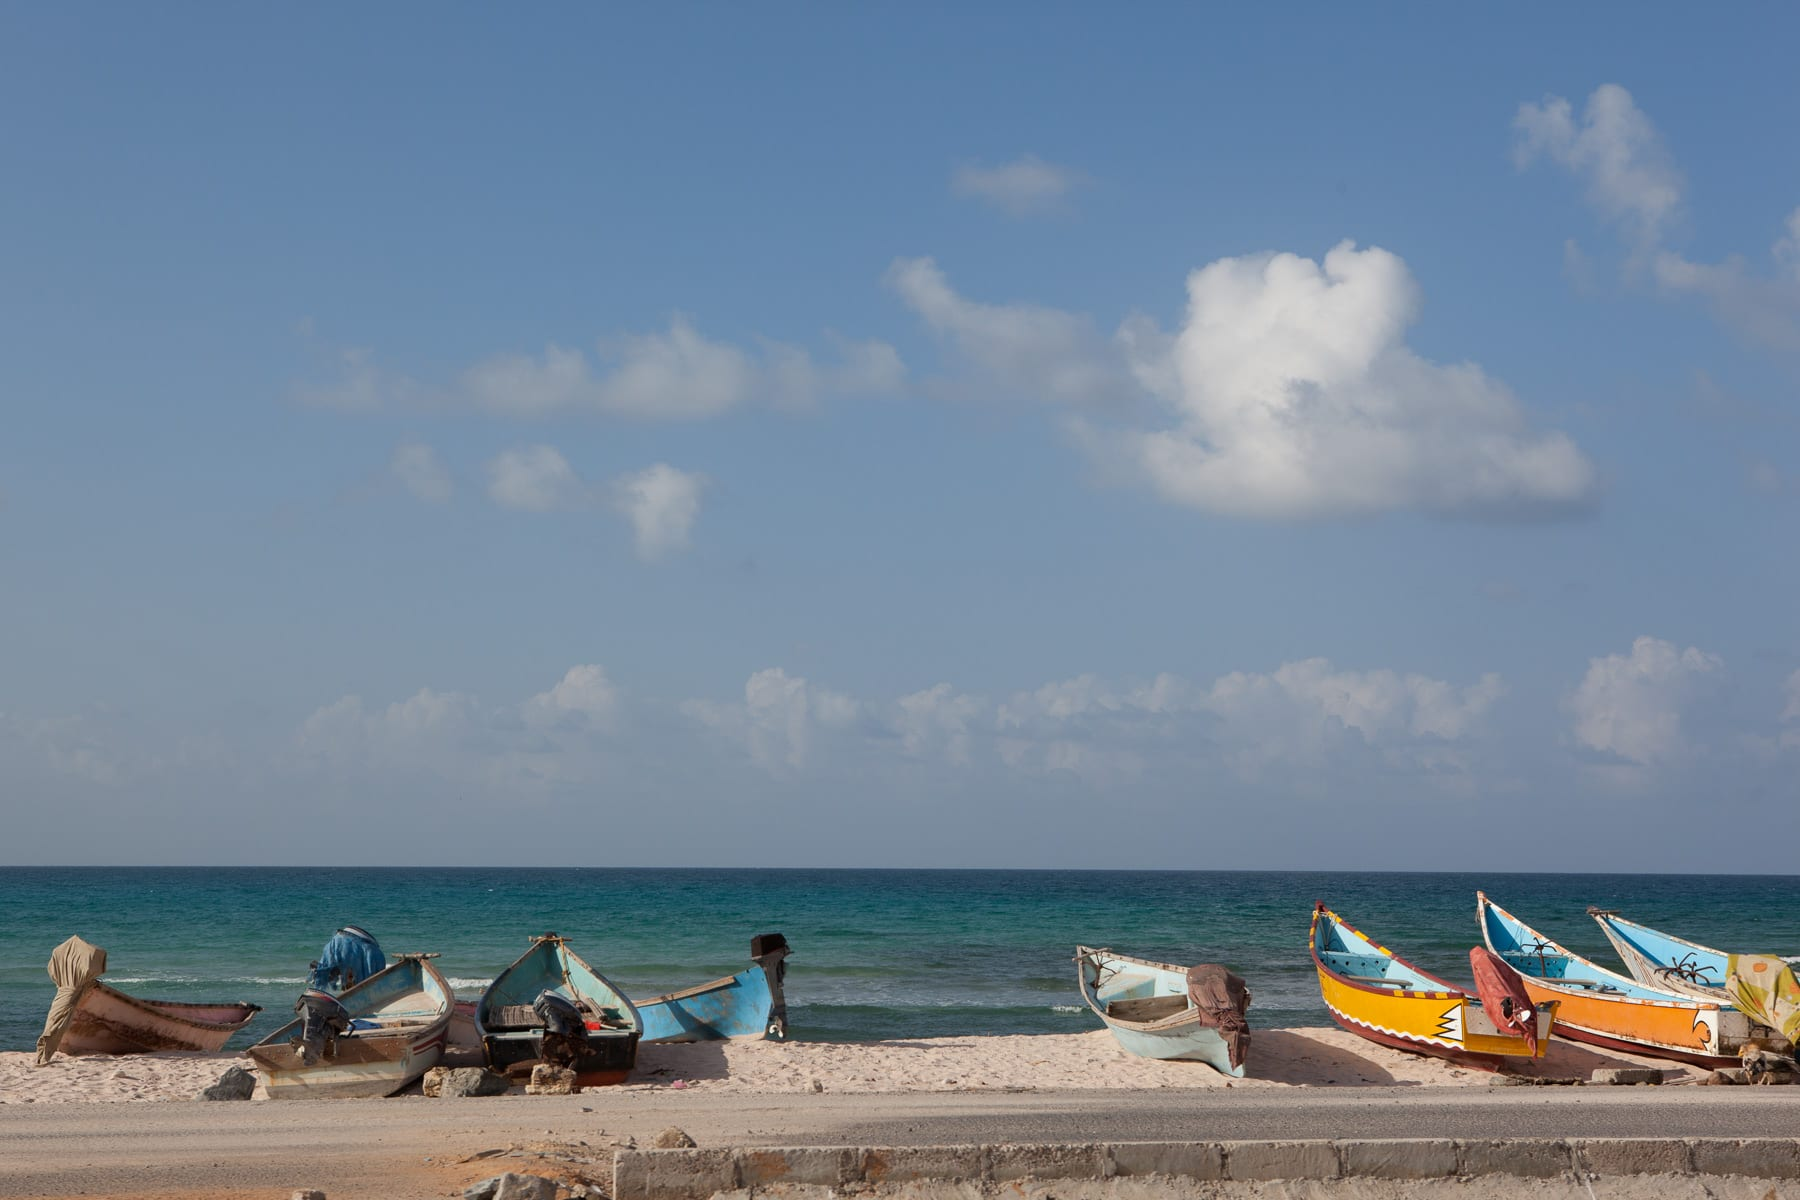 socotra-yemen-travels-s2-images-001-4